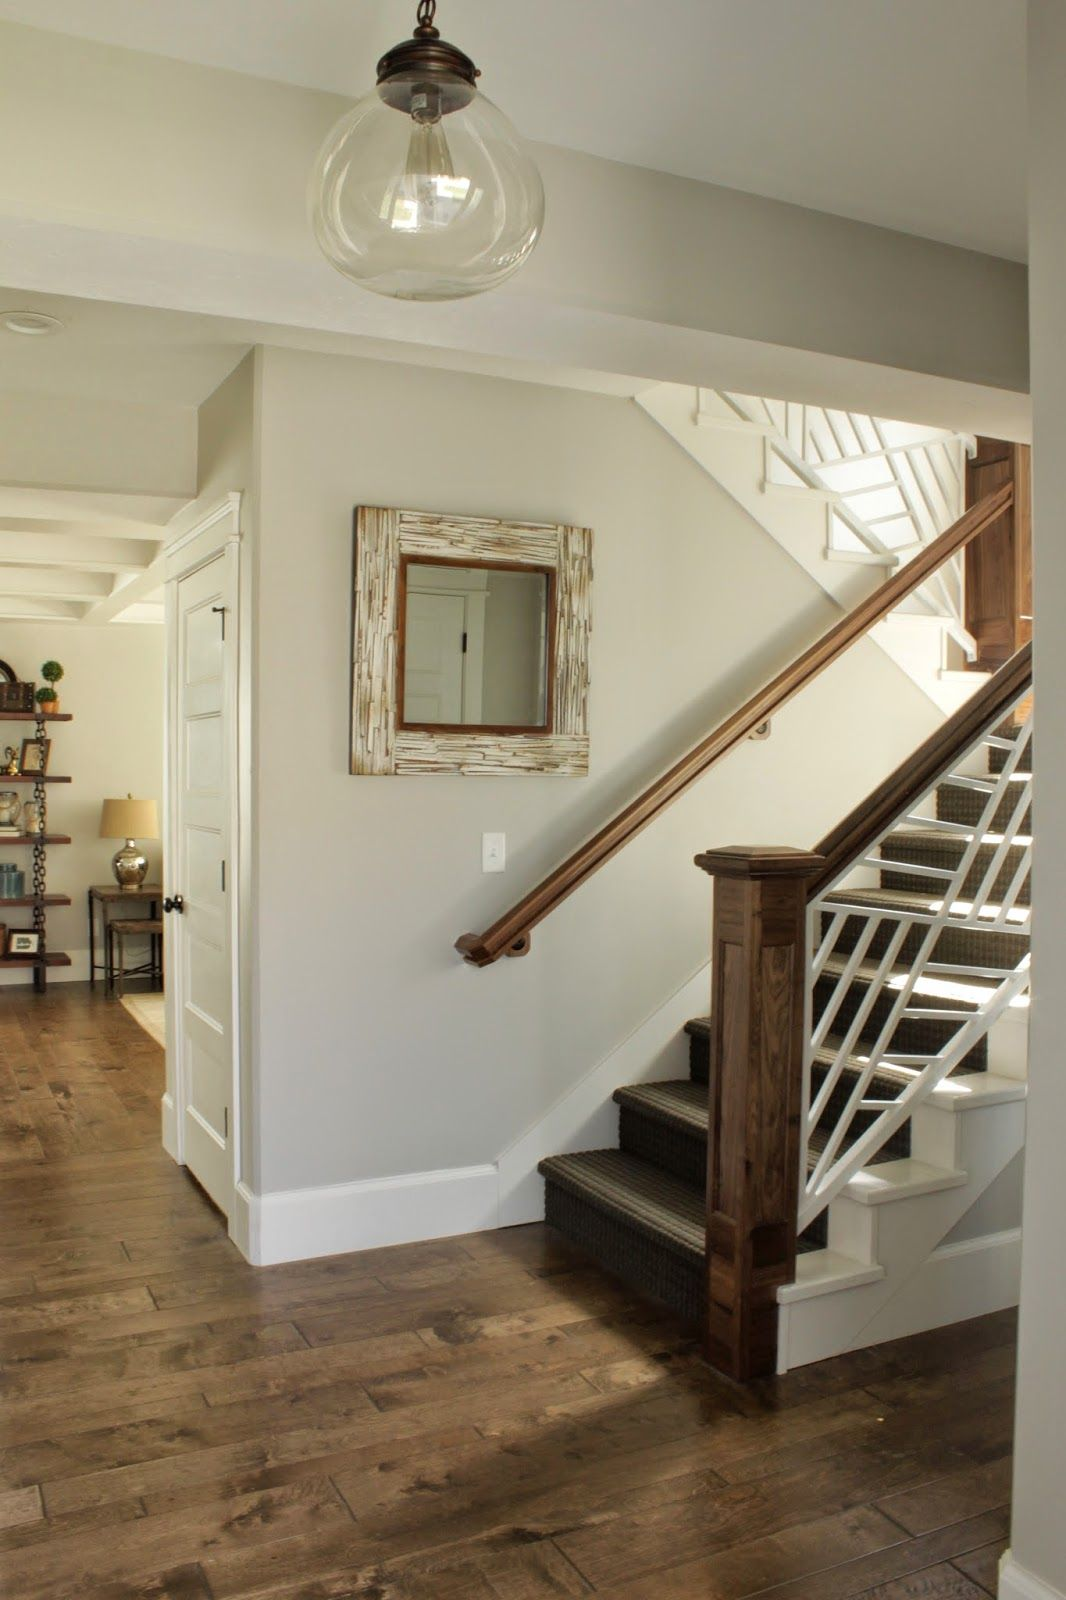 Paint colors repose gray by sherwin williams warm for Popular grey paint sherwin williams